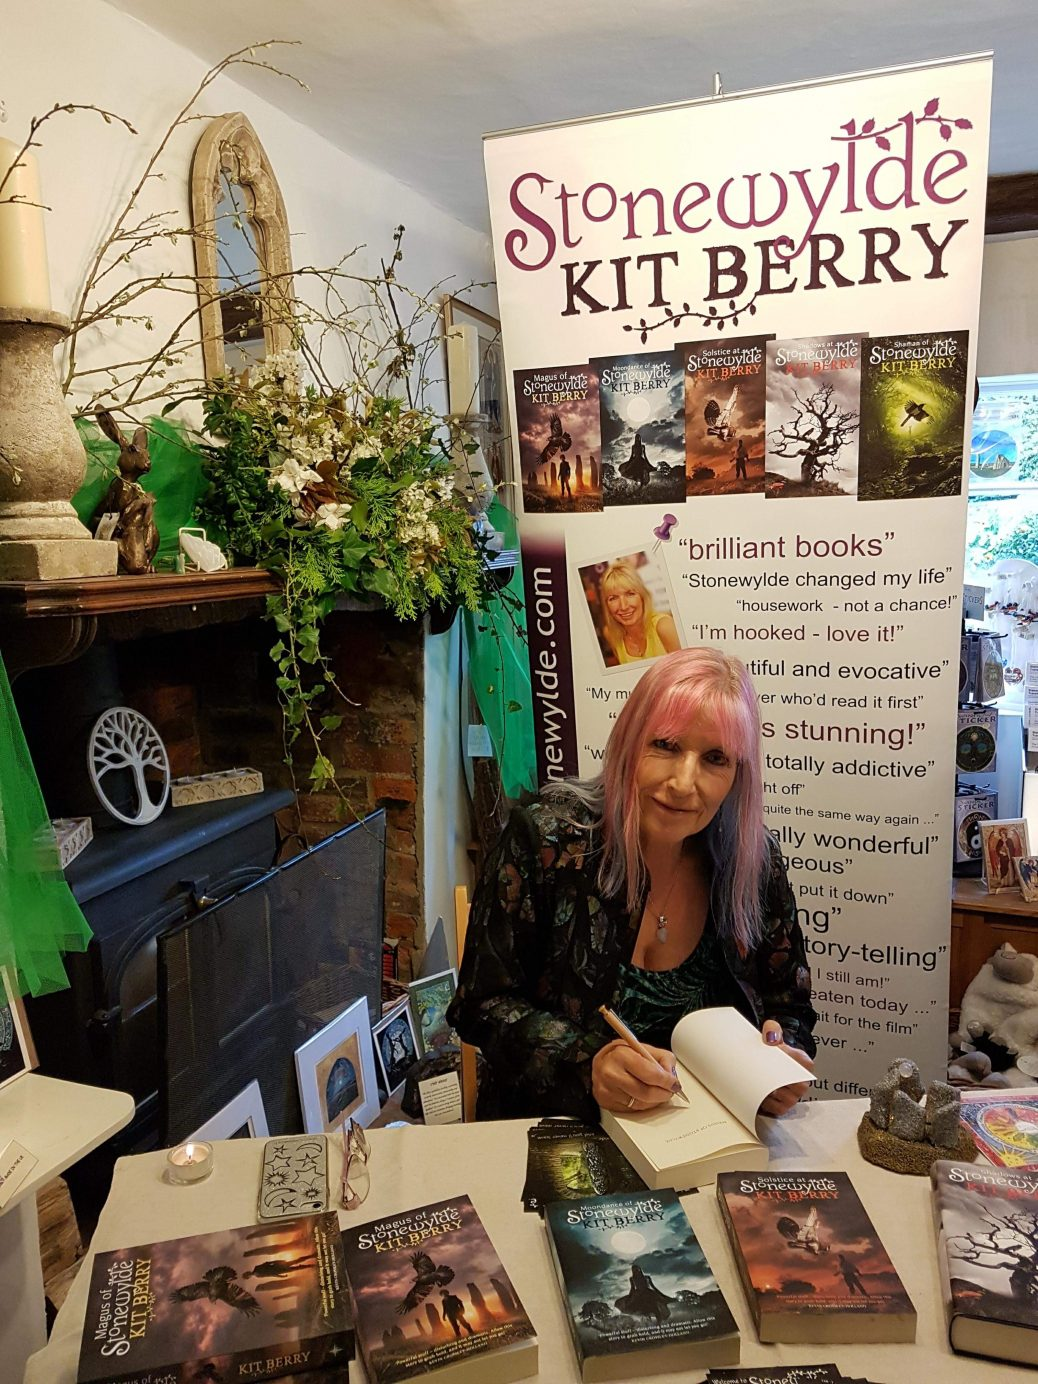 Kit Berry Signing Books at Henge Shop